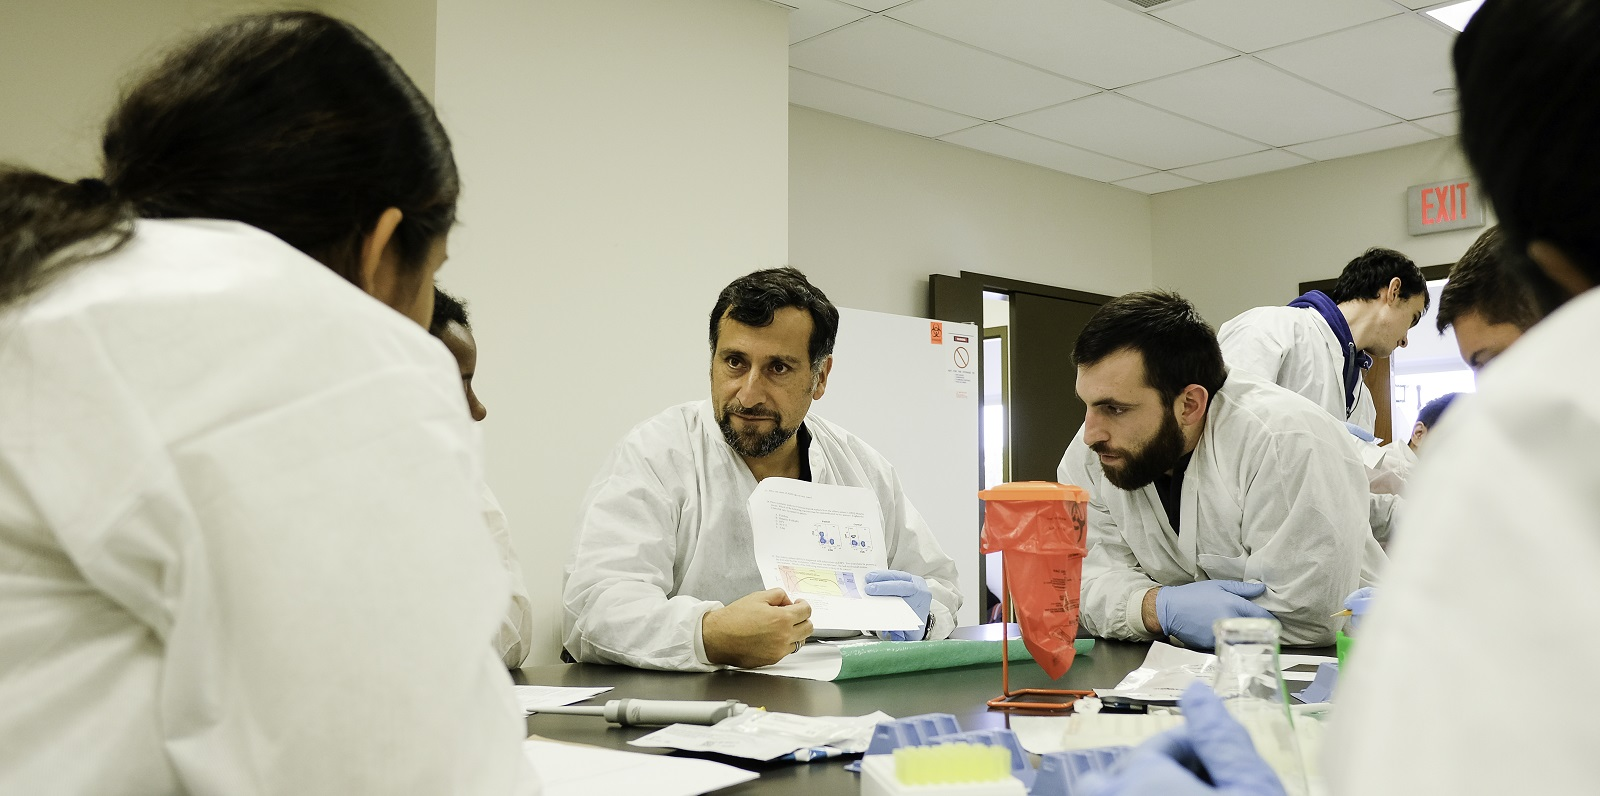 Dr. Claudio Cortes shows a graph on a piece of paper to a group of students who are huddled around a lab table